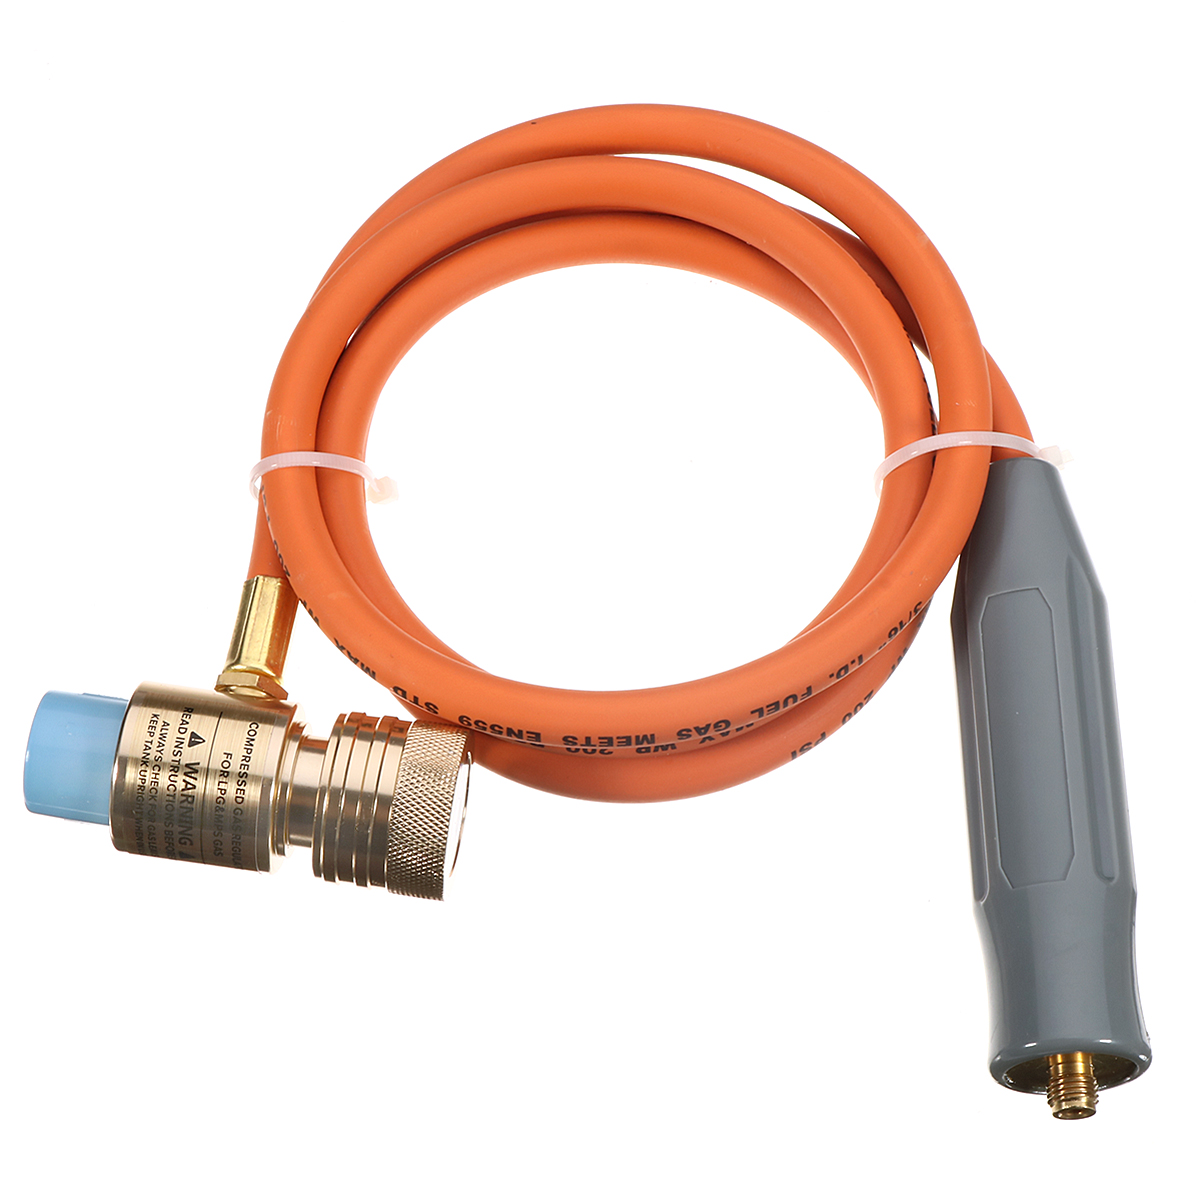 Mapp Gas Self Ignition Plumbing Turbo Torch With Hose S